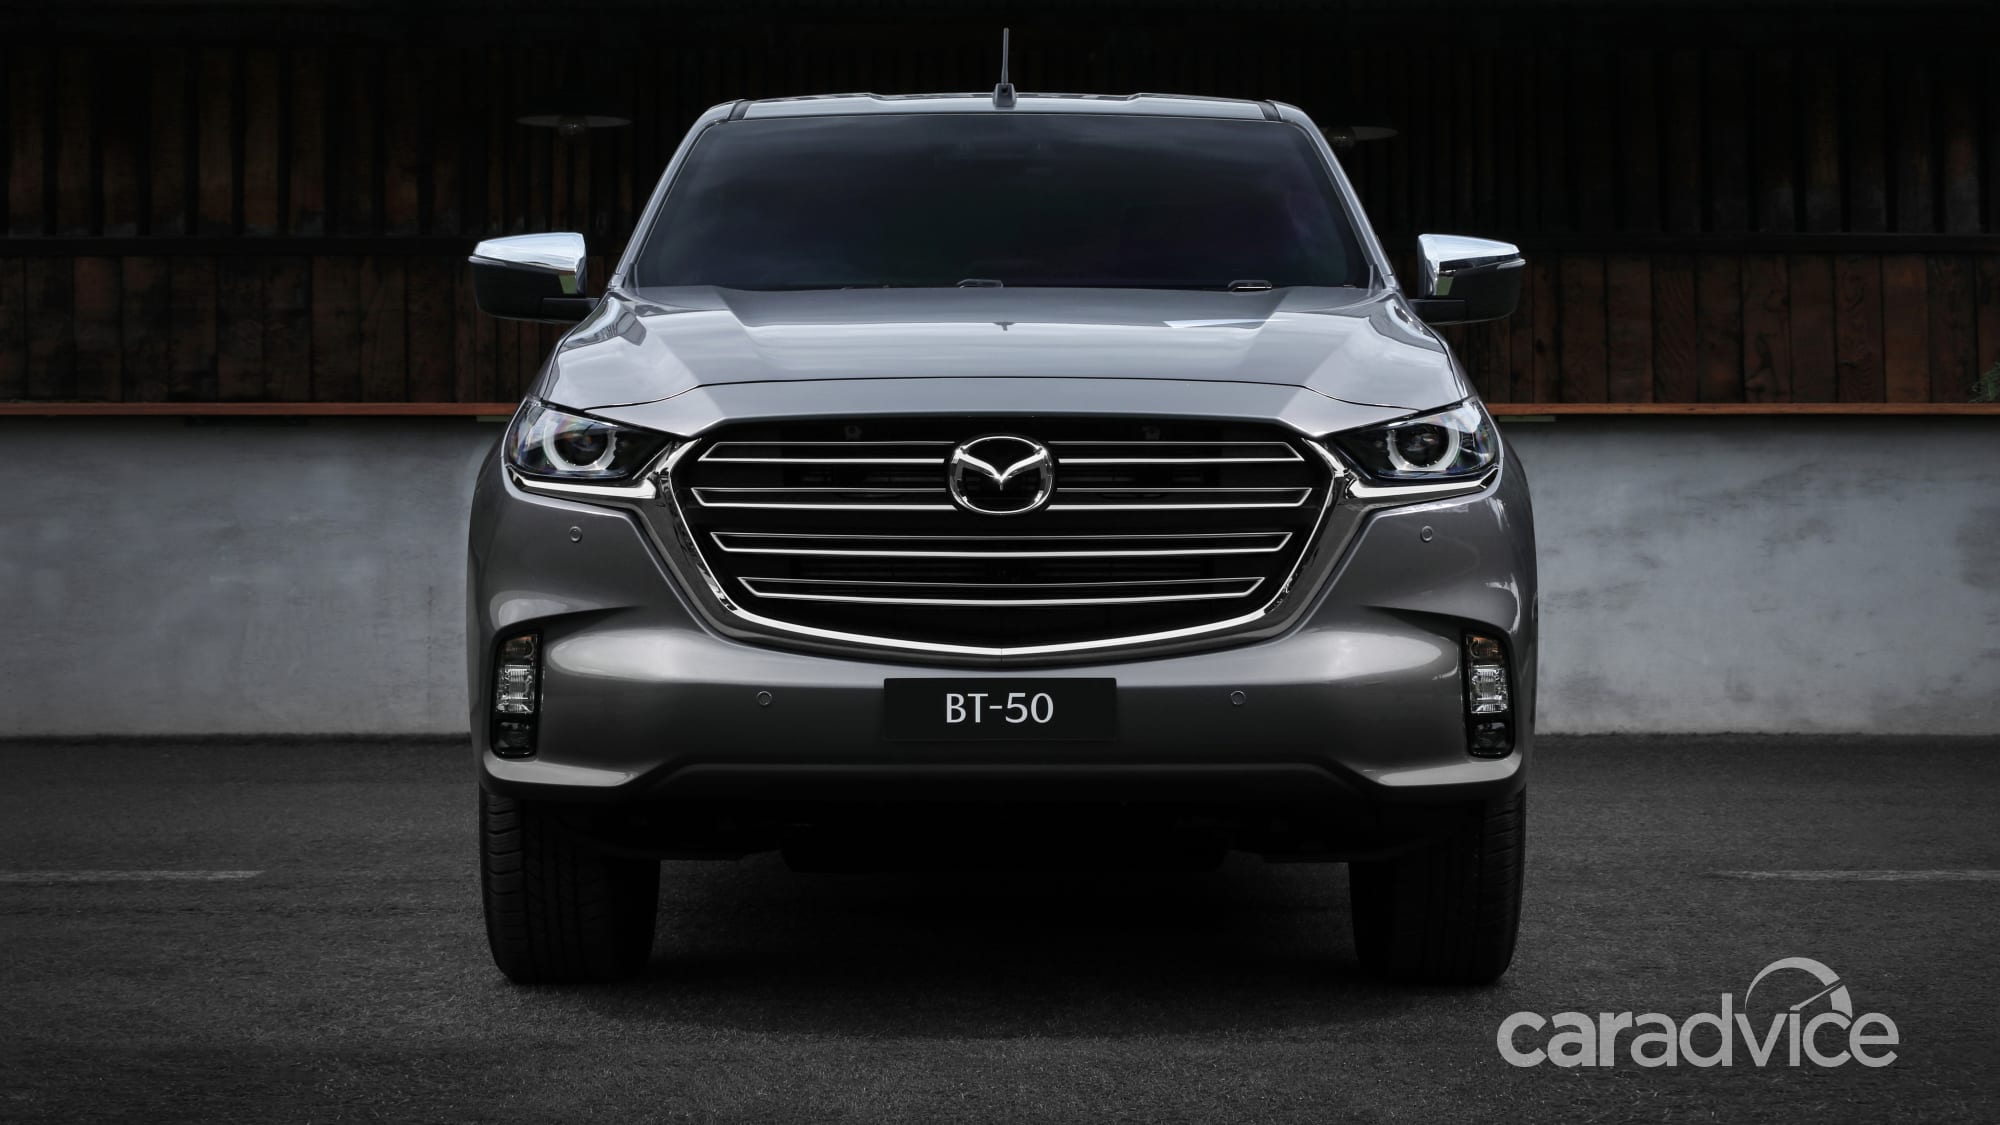 2021 mazda bt-50 unveiled, in showrooms this year   caradvice